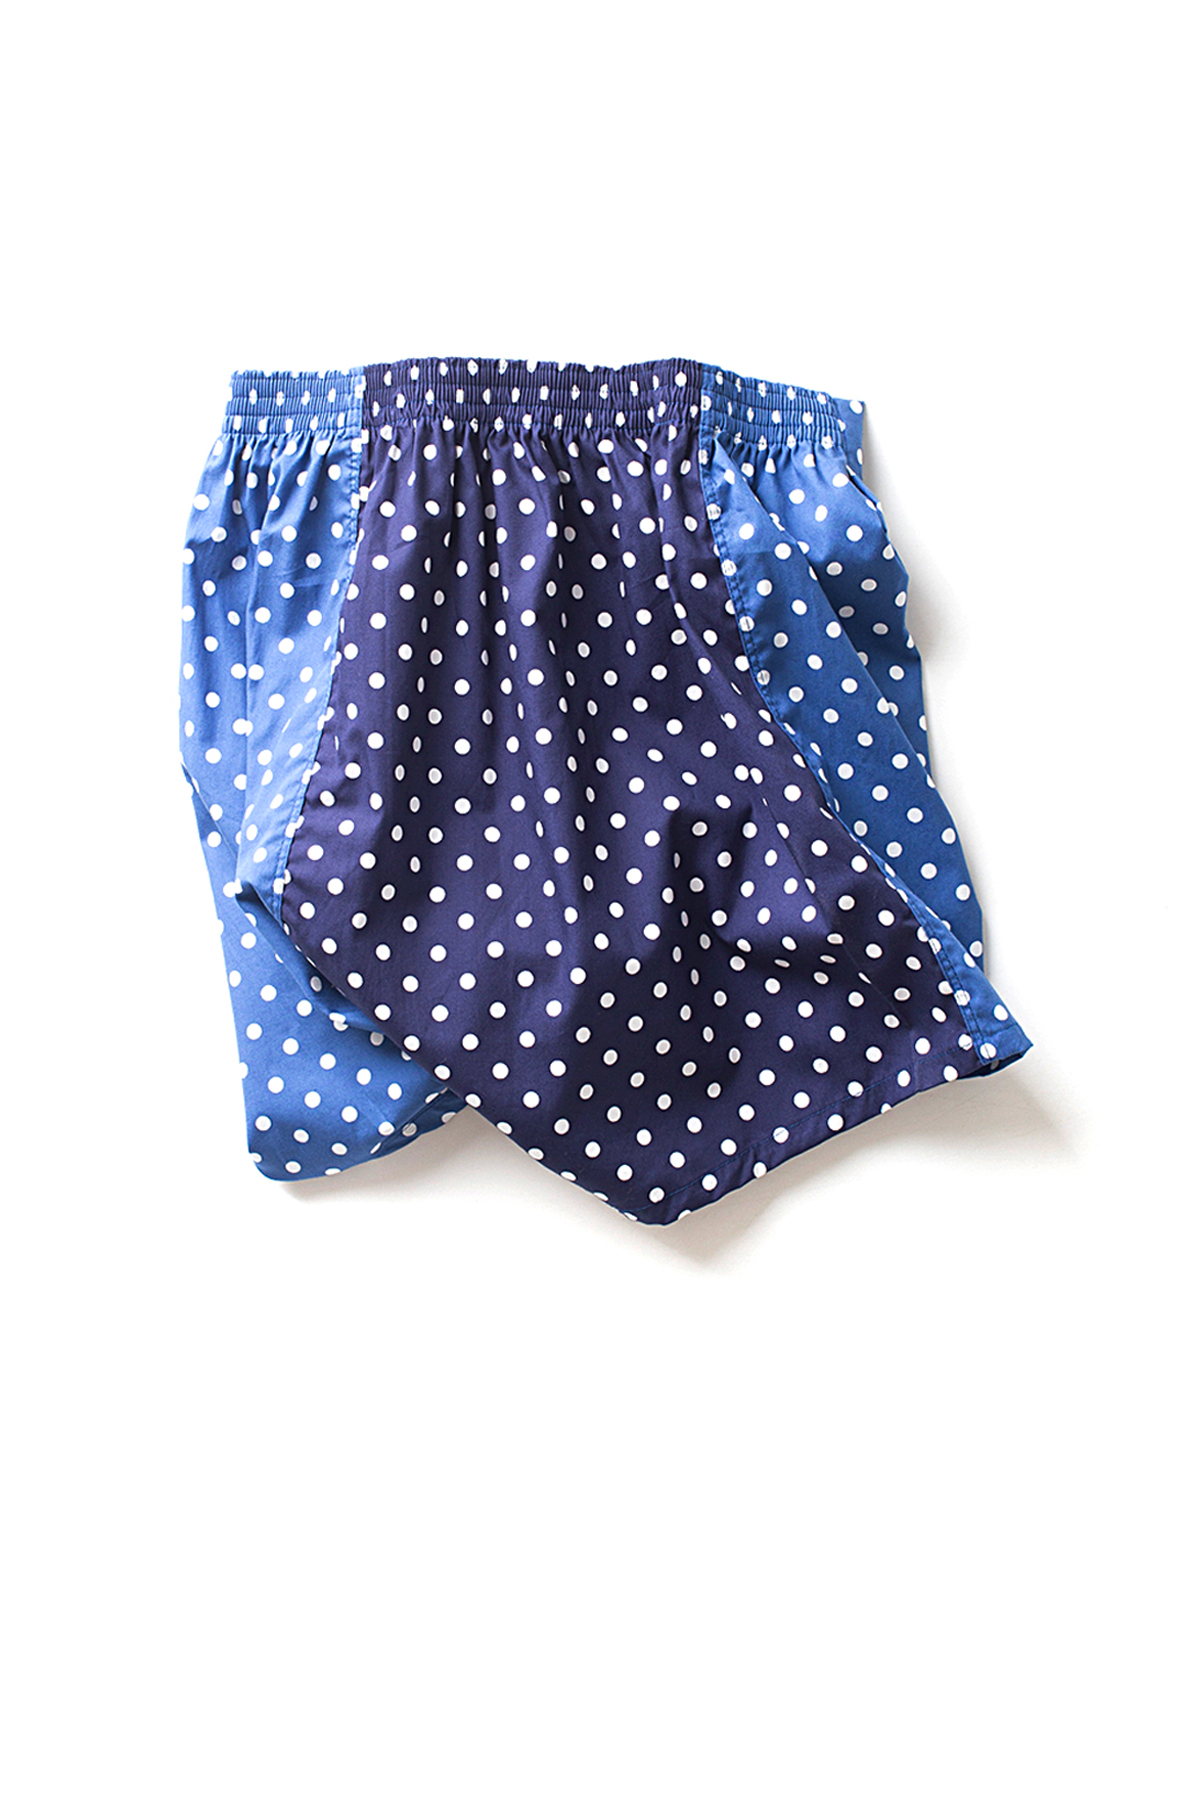 NAPALS : Crazy Dot Box Trunks (Dot)